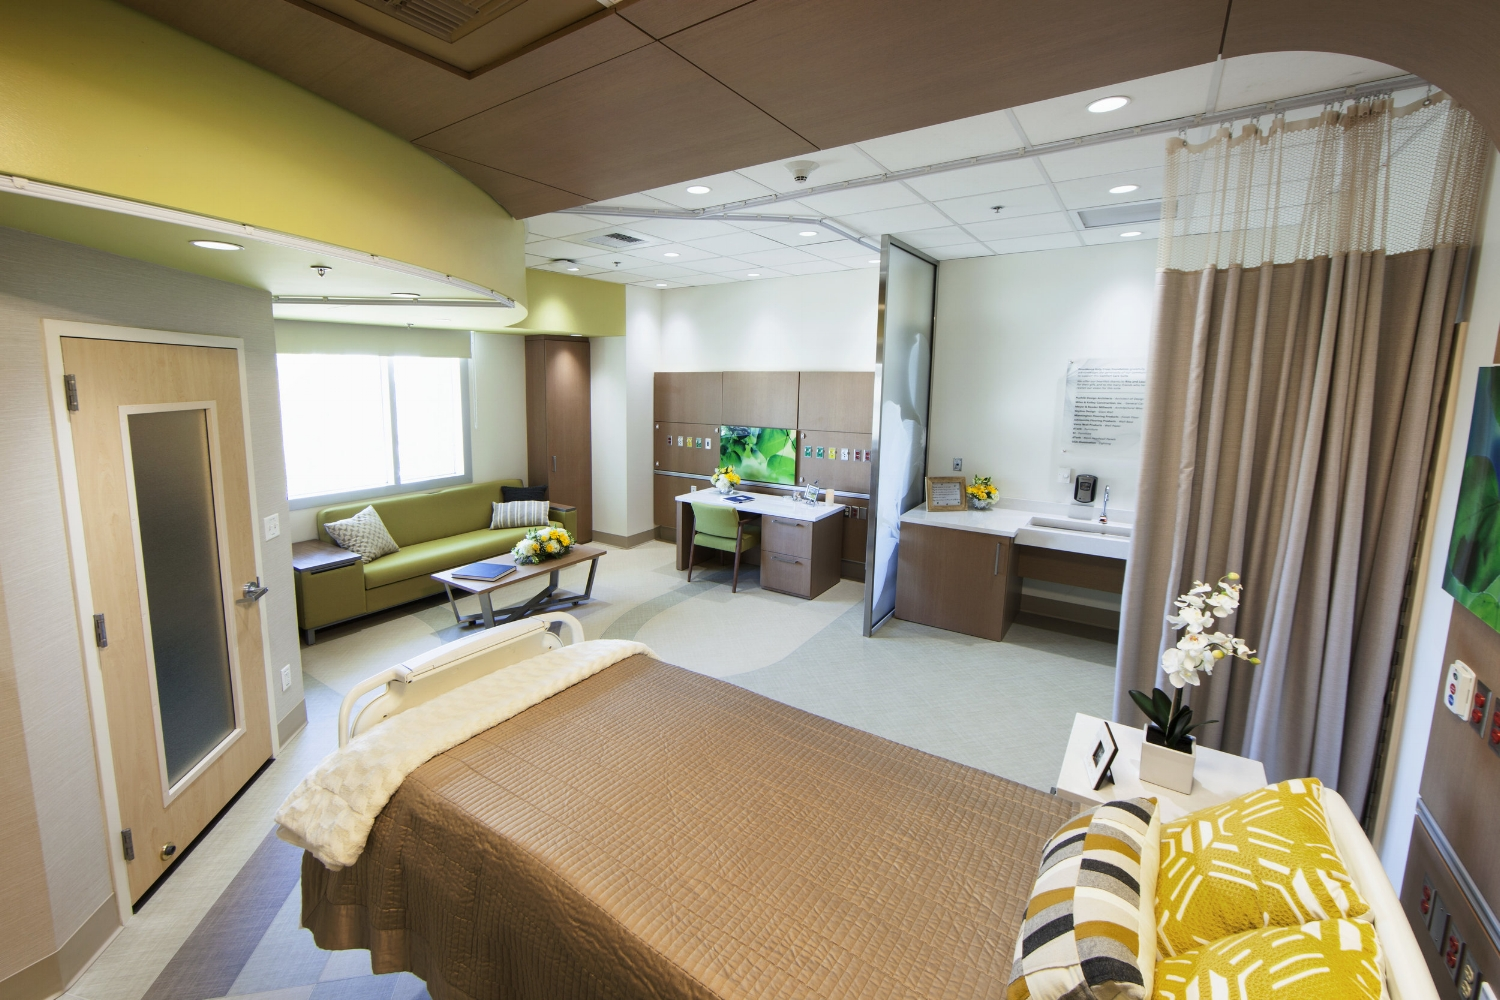 10 PHC Comfort Care Suite - Puchlik Design Associates.jpg